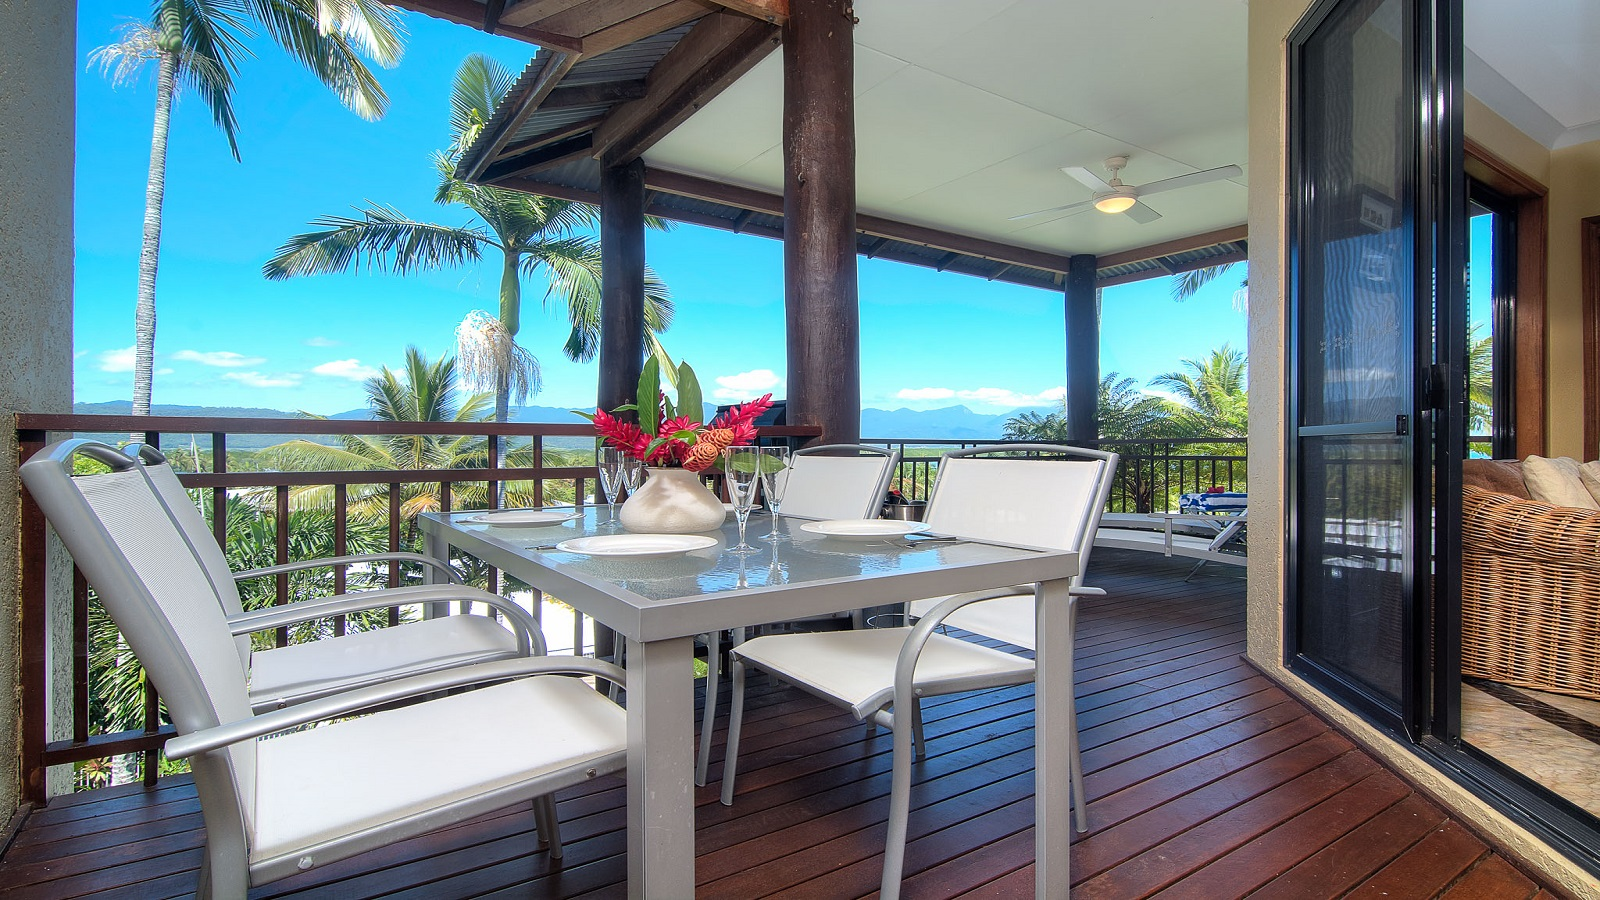 Port Douglas Luxury Holiday Rental Point 8 Villa 2 bedroom